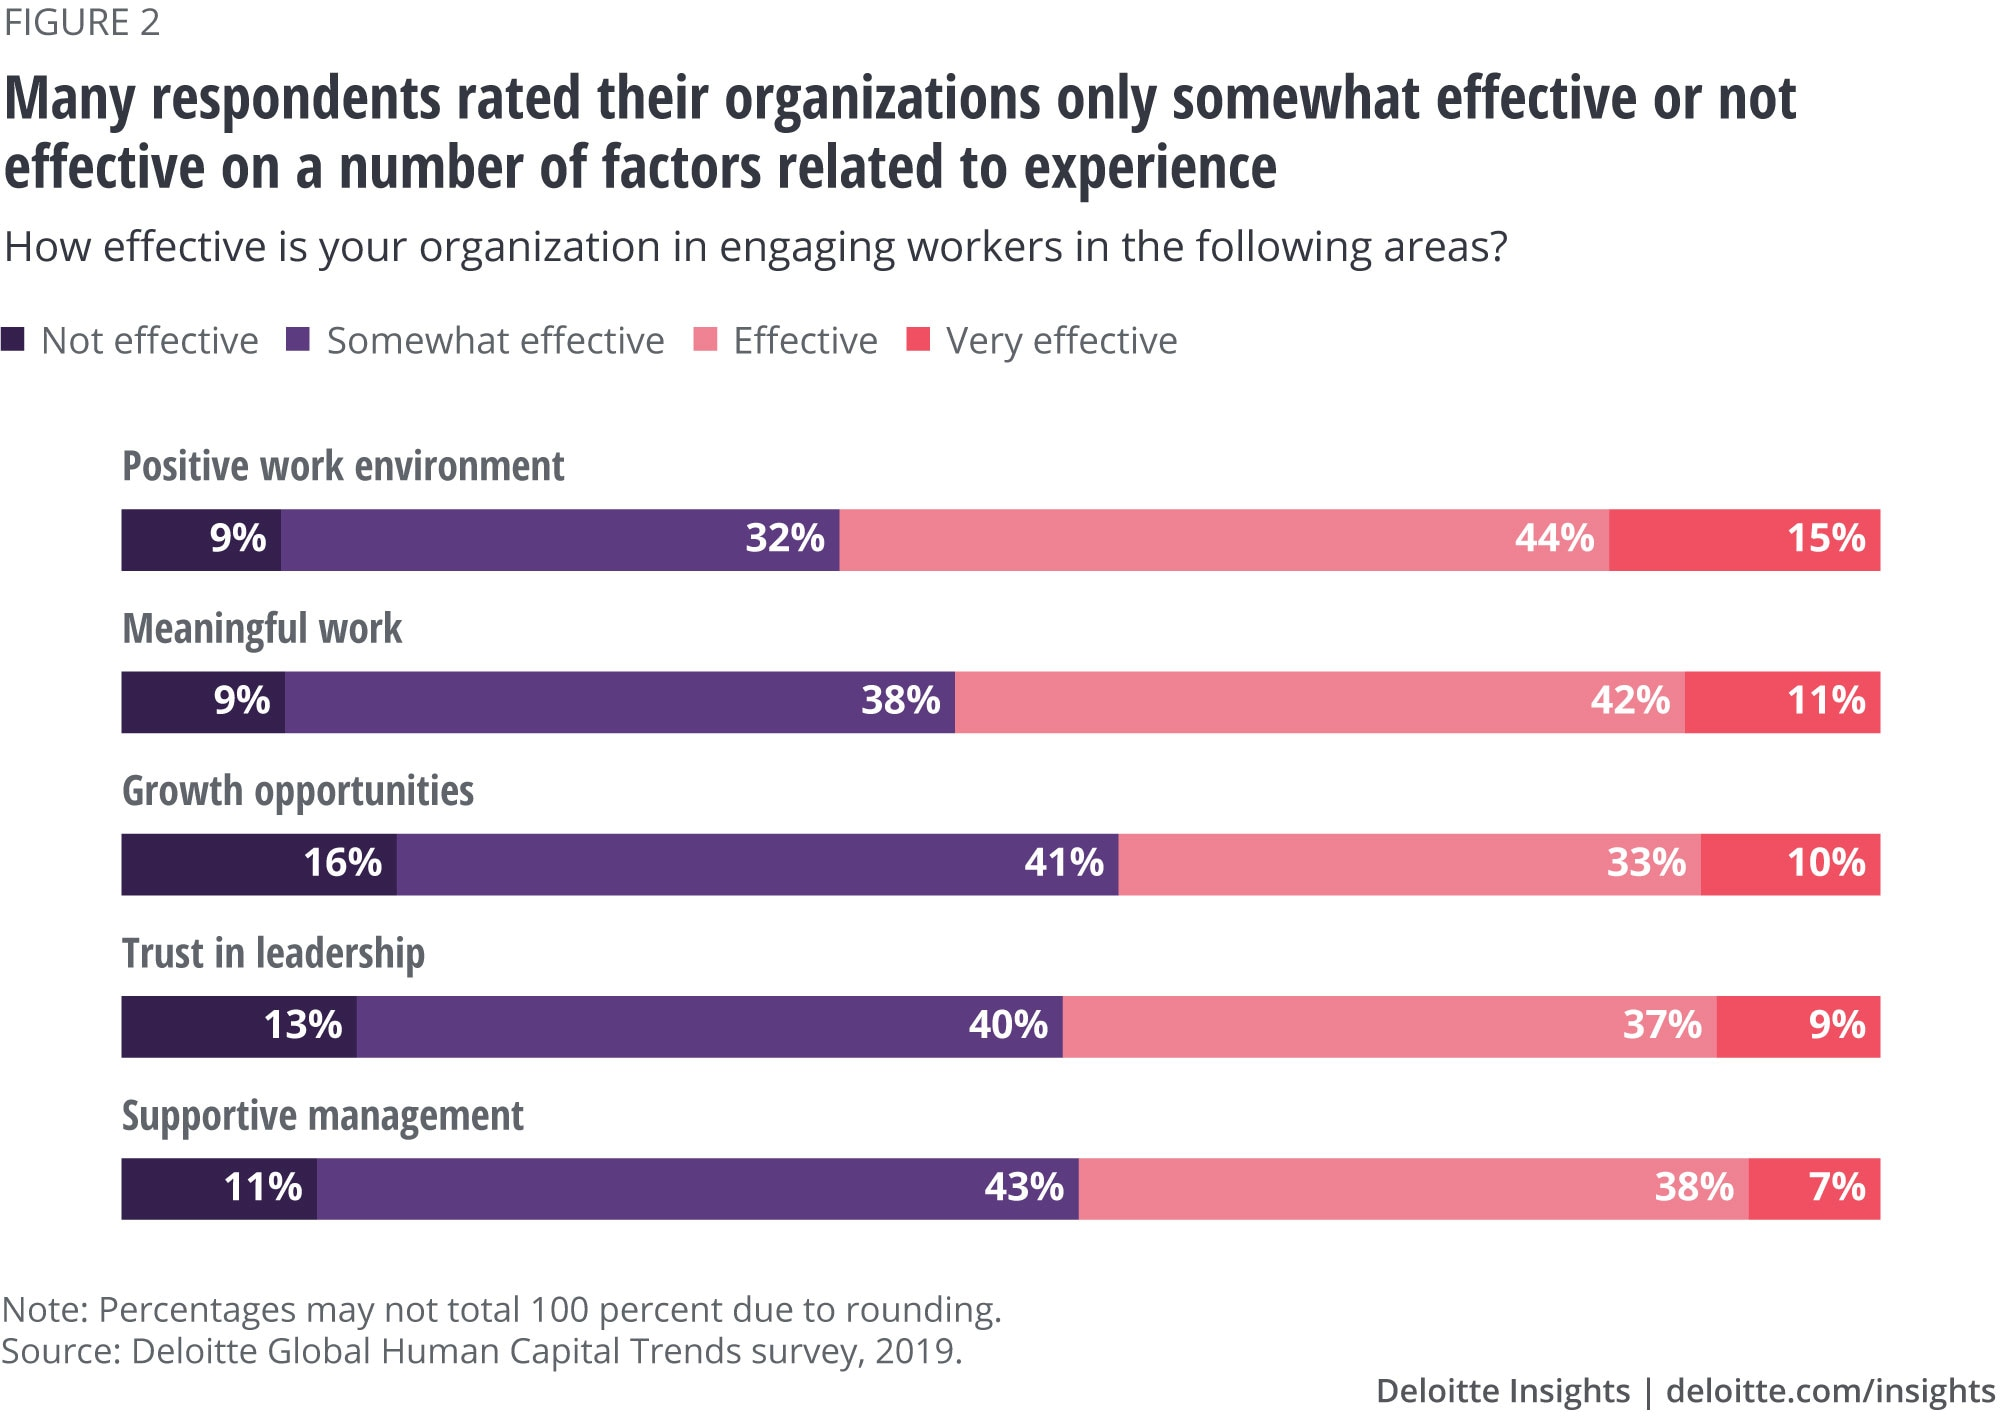 Many respondents rated their organizations only somewhat effective or not effective on a number of factors related to experience